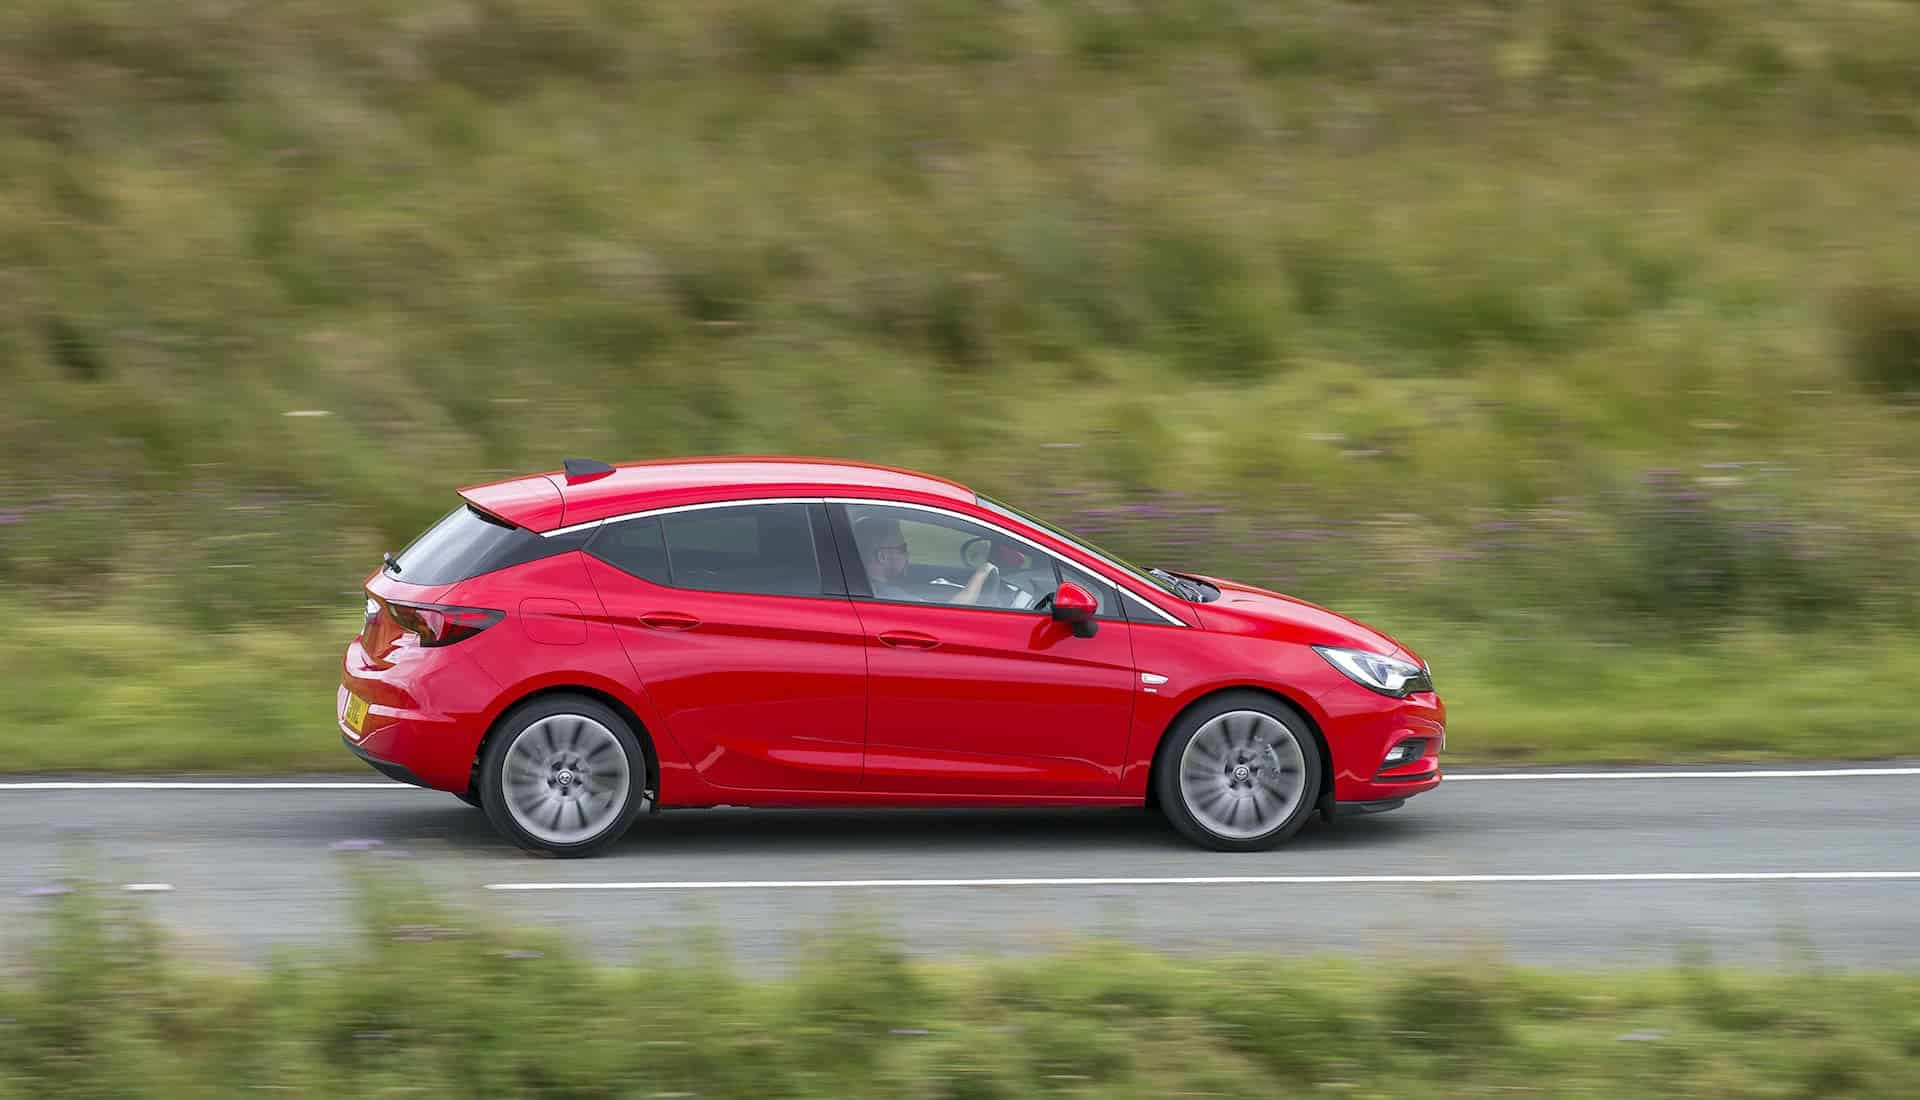 Vauxhall Astra 1.0-litre on the road (The Car Expert)